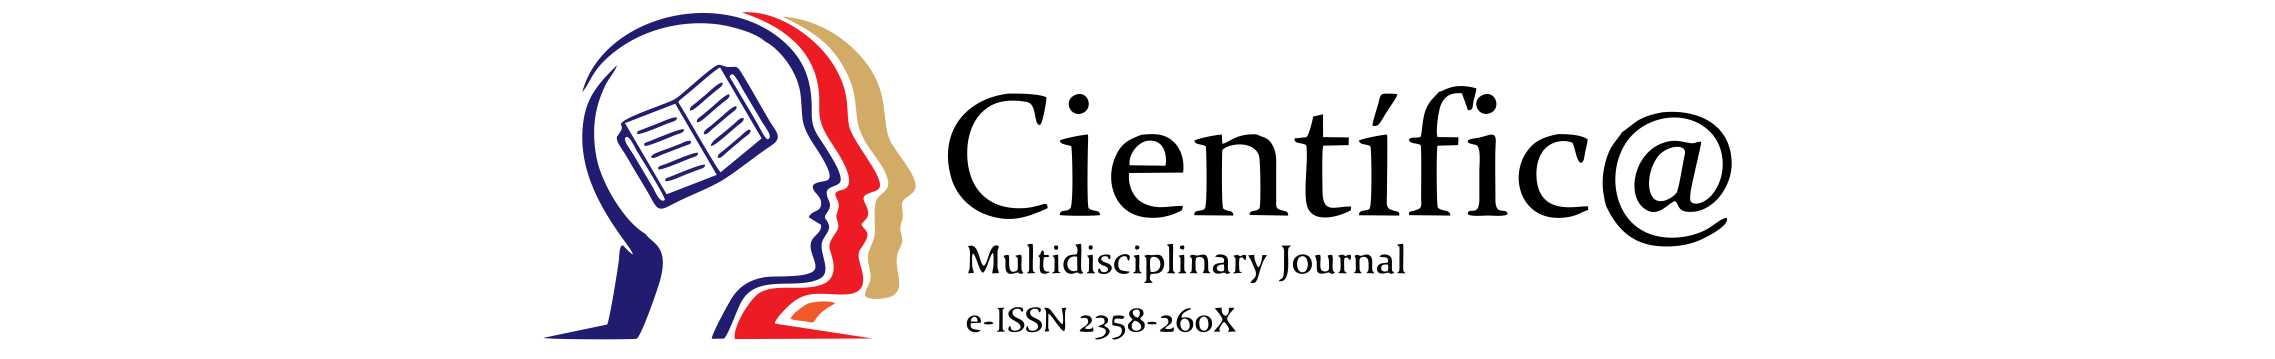 Científic@ - Multidisciplinary Journal